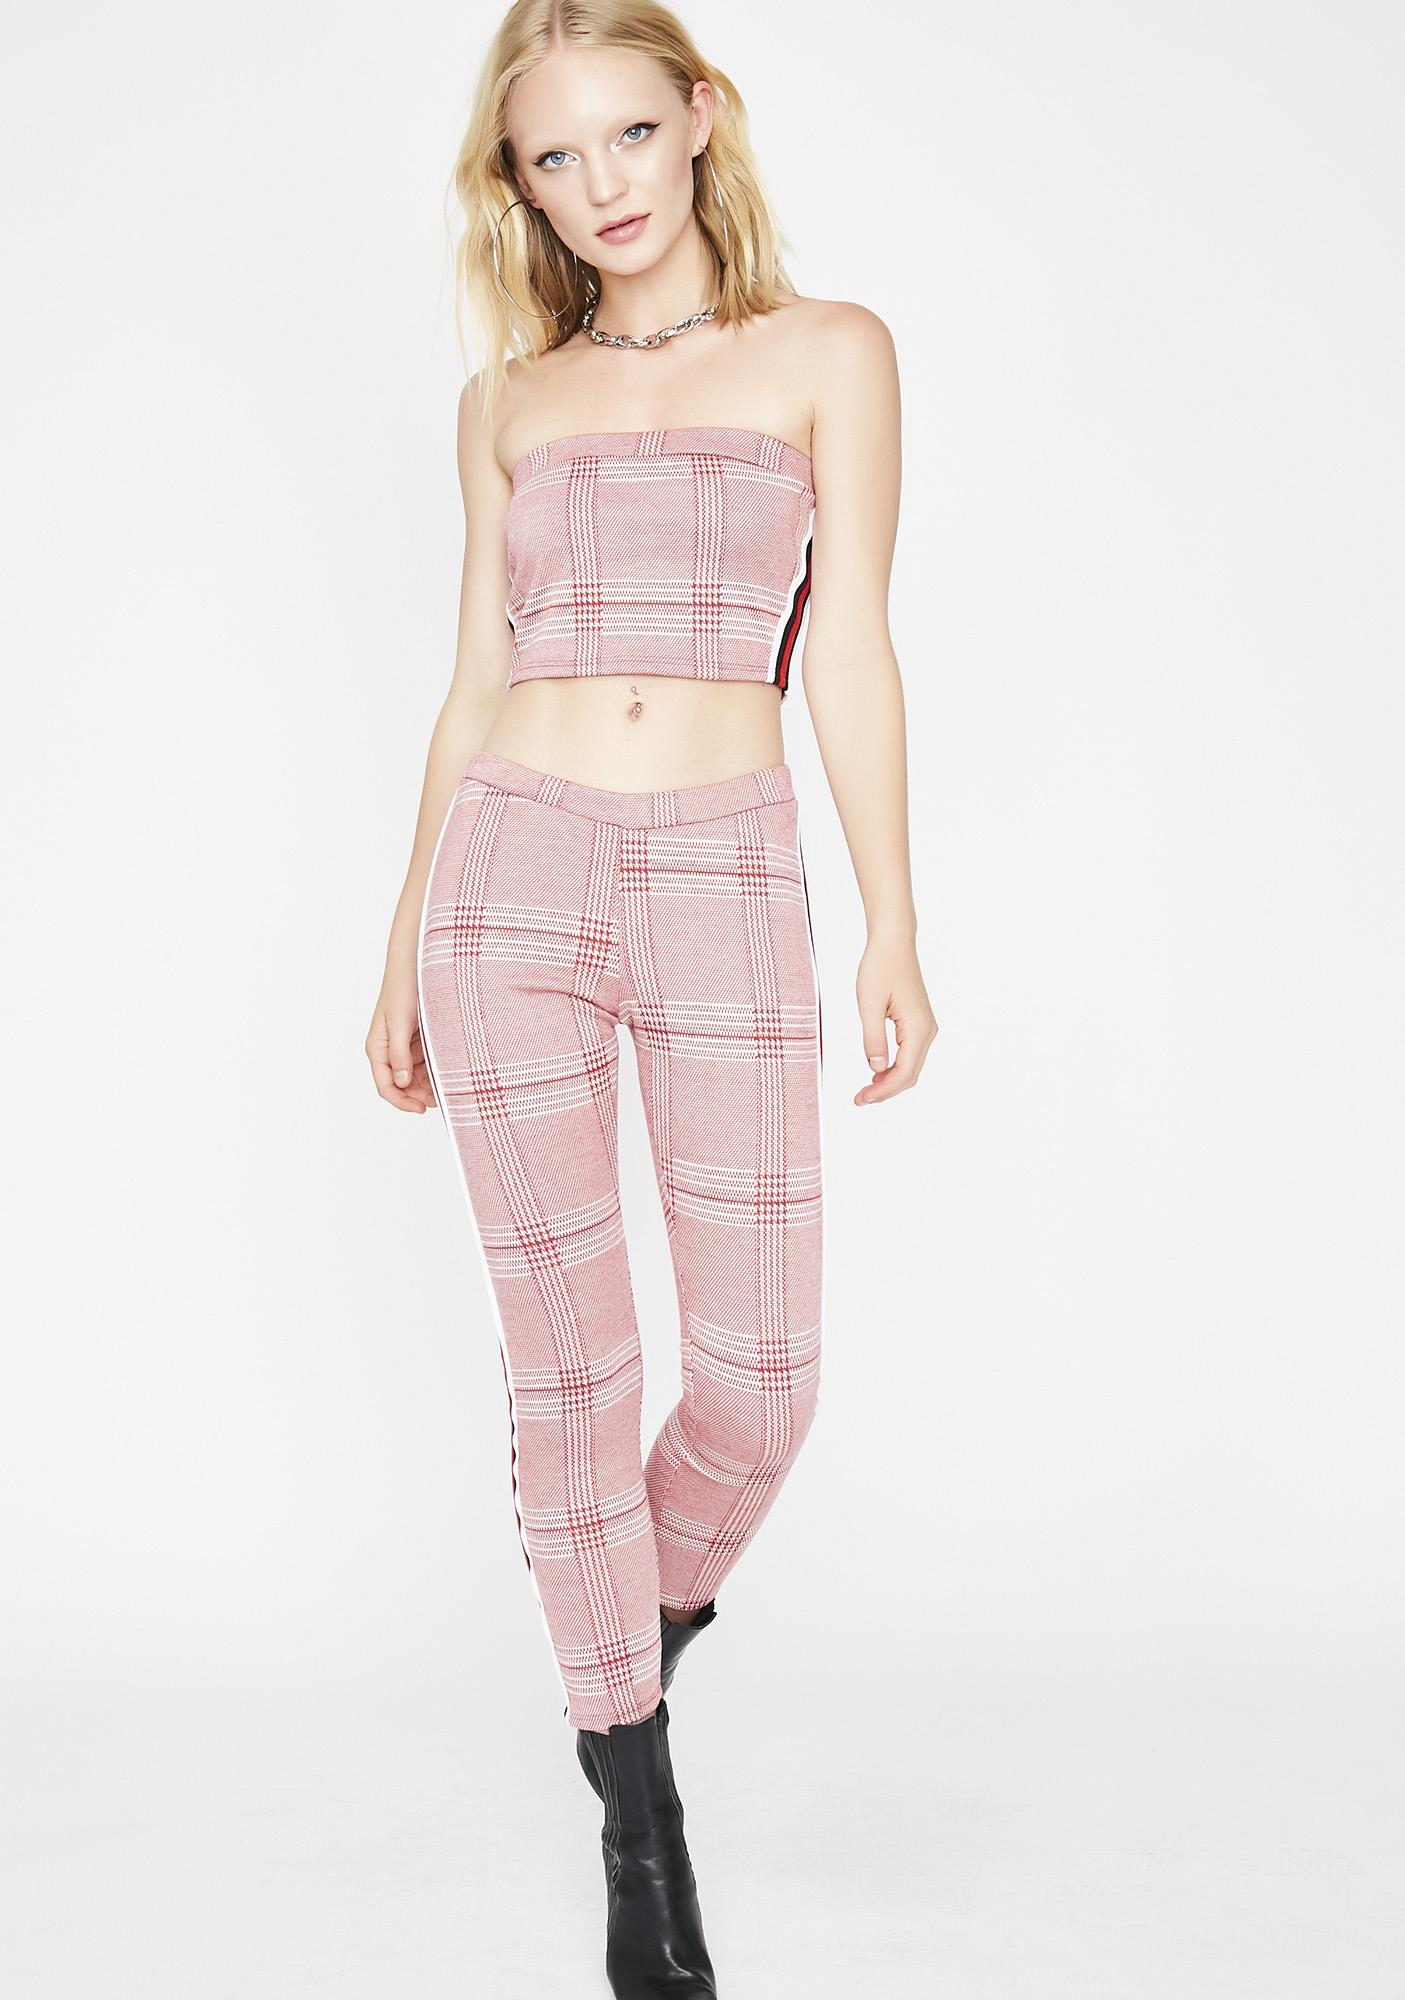 Breakin Habits Plaid Set